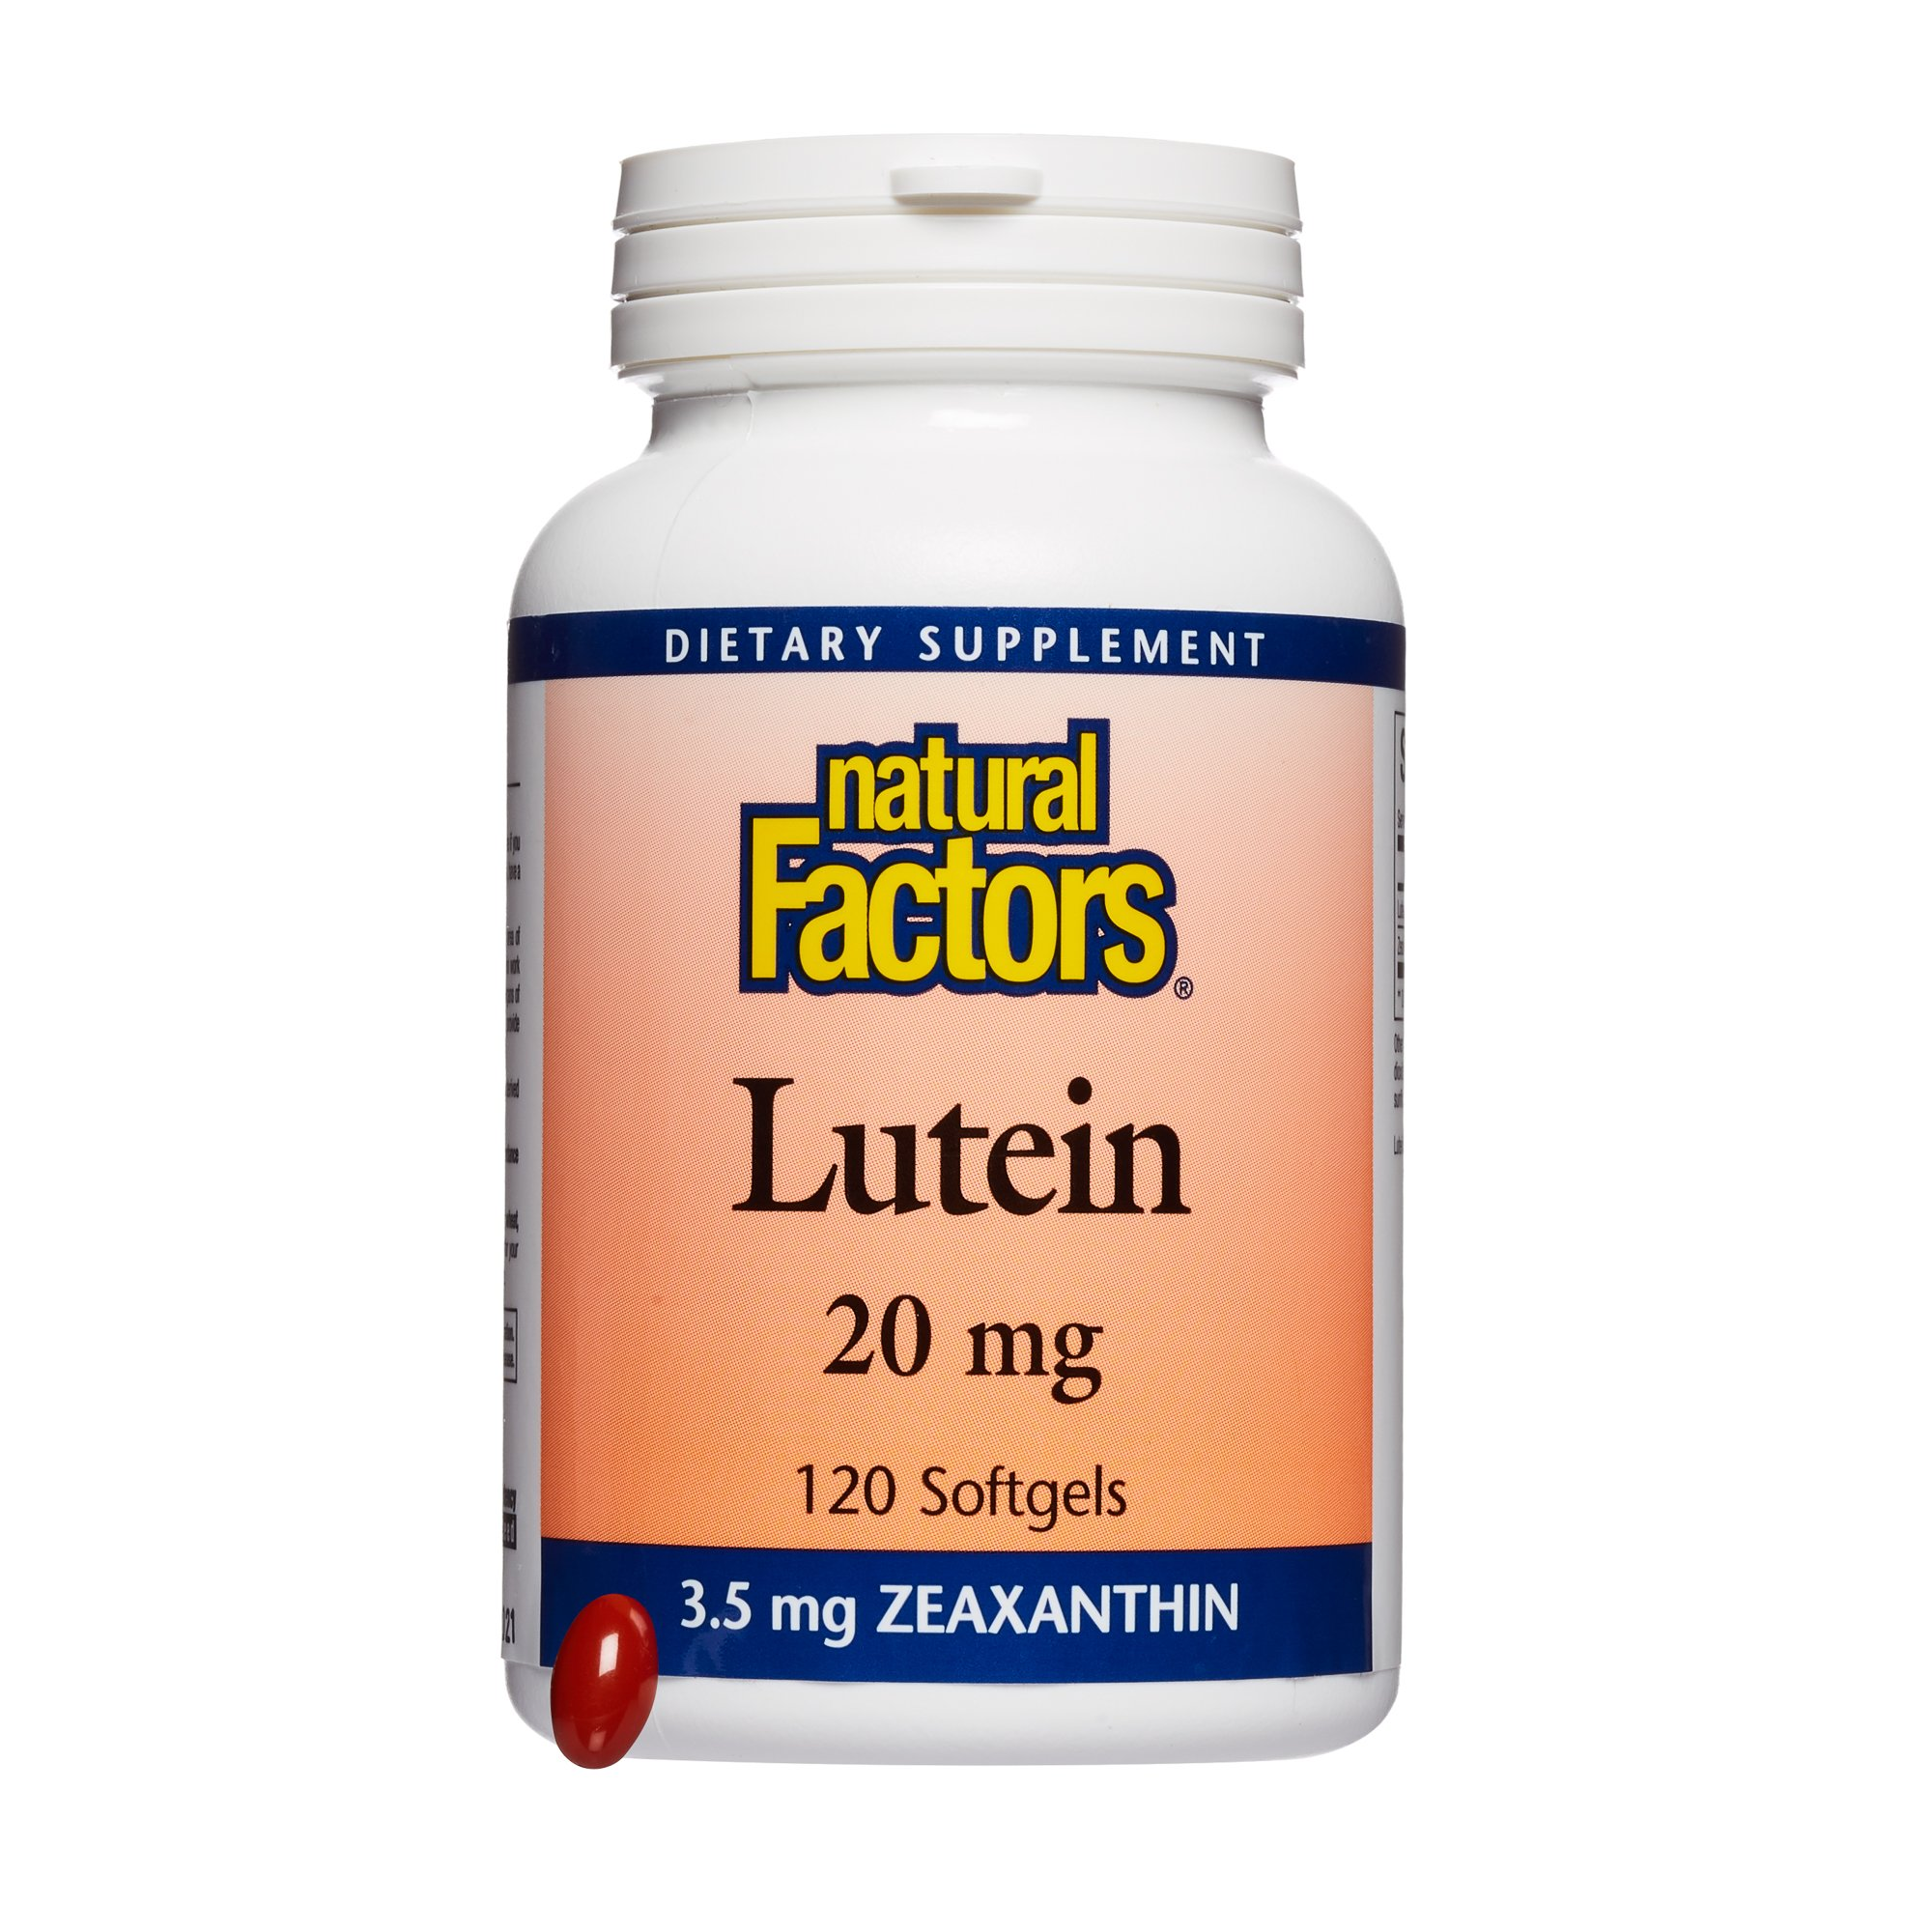 Natural Factors, Lutein 20 mg, Antioxidant Support for Healthy Eyes and Skin with Zeaxanthin, 120 softgels (120 servings)